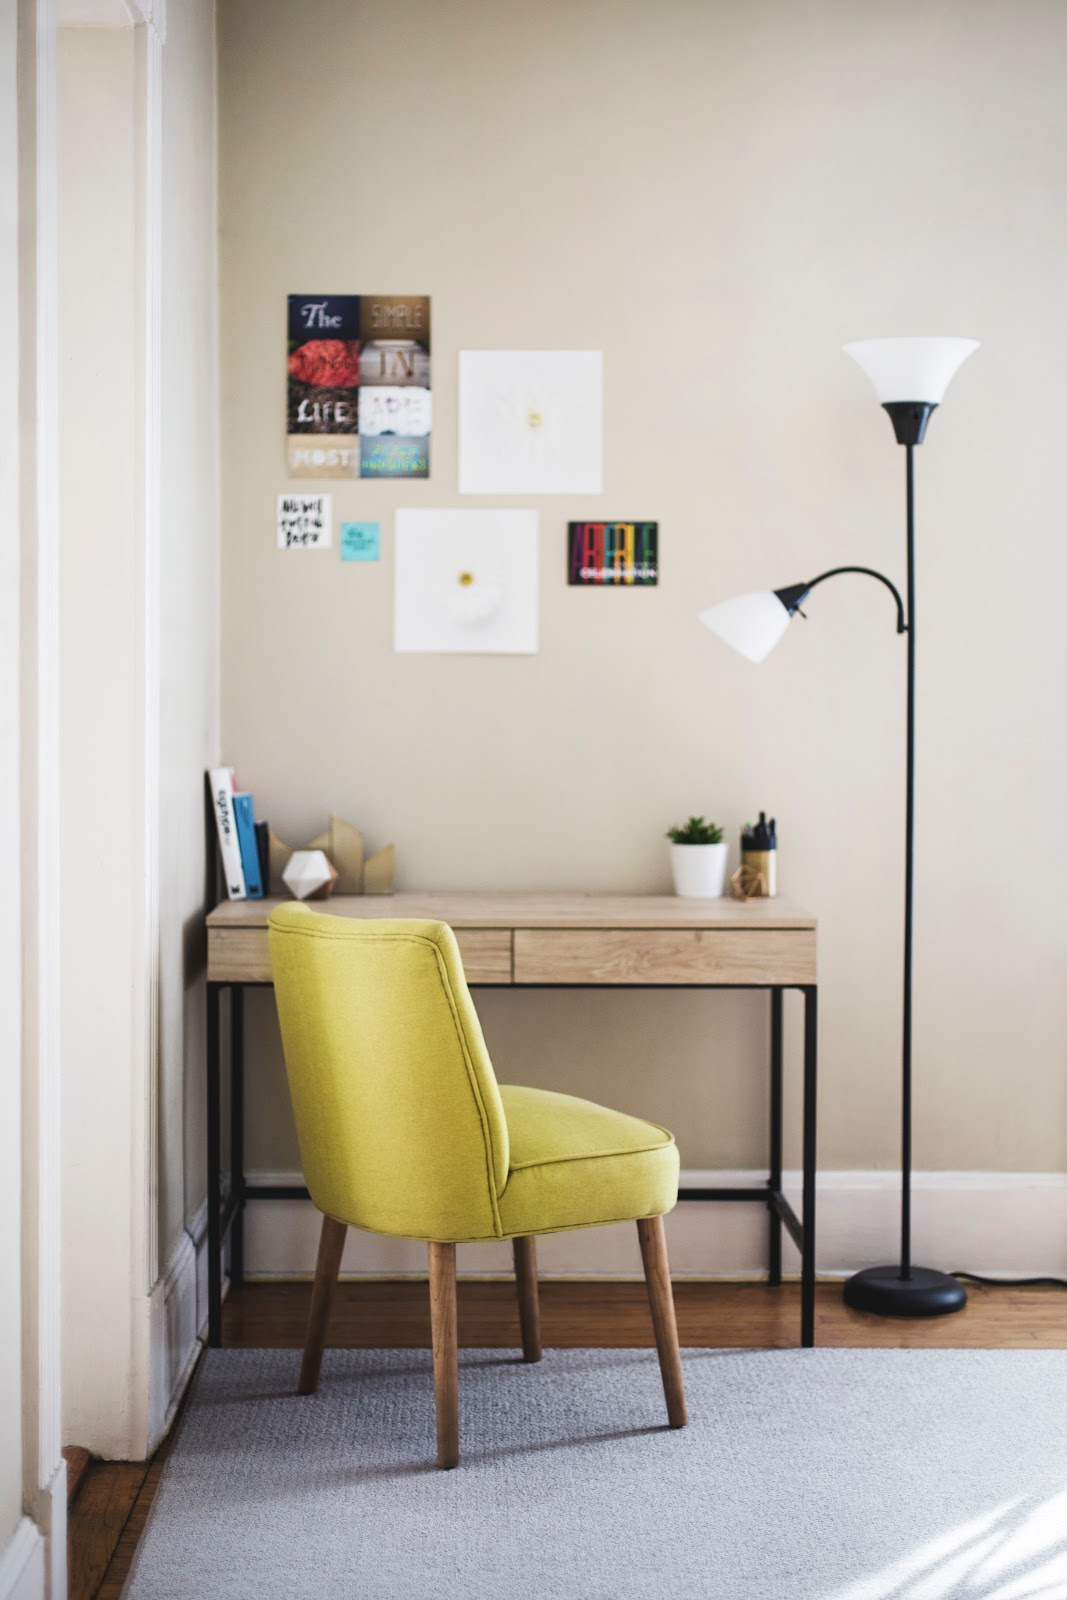 Home desk chair and lamp matching